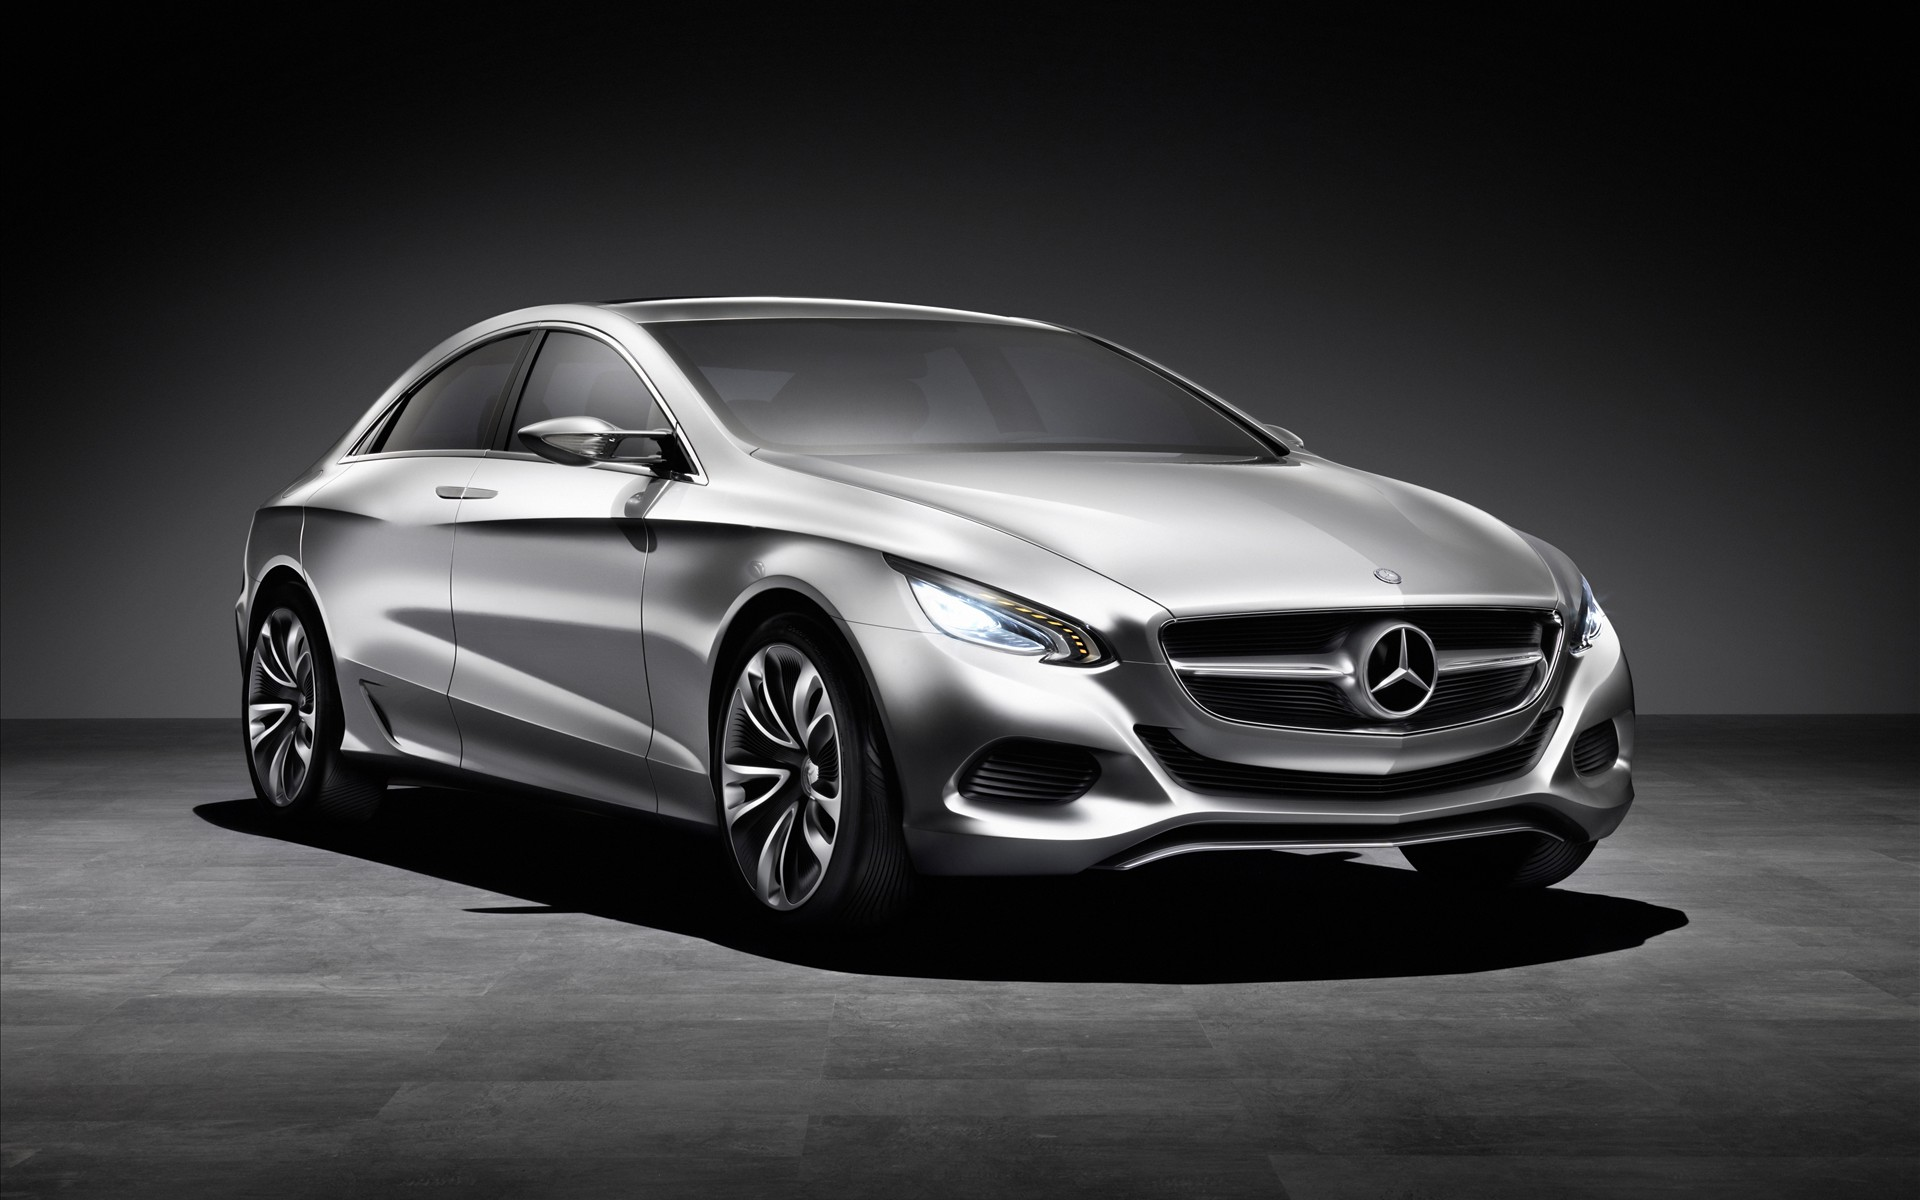 20 Excellent Hd Mercedes Wallpapers Images, Photos, Reviews